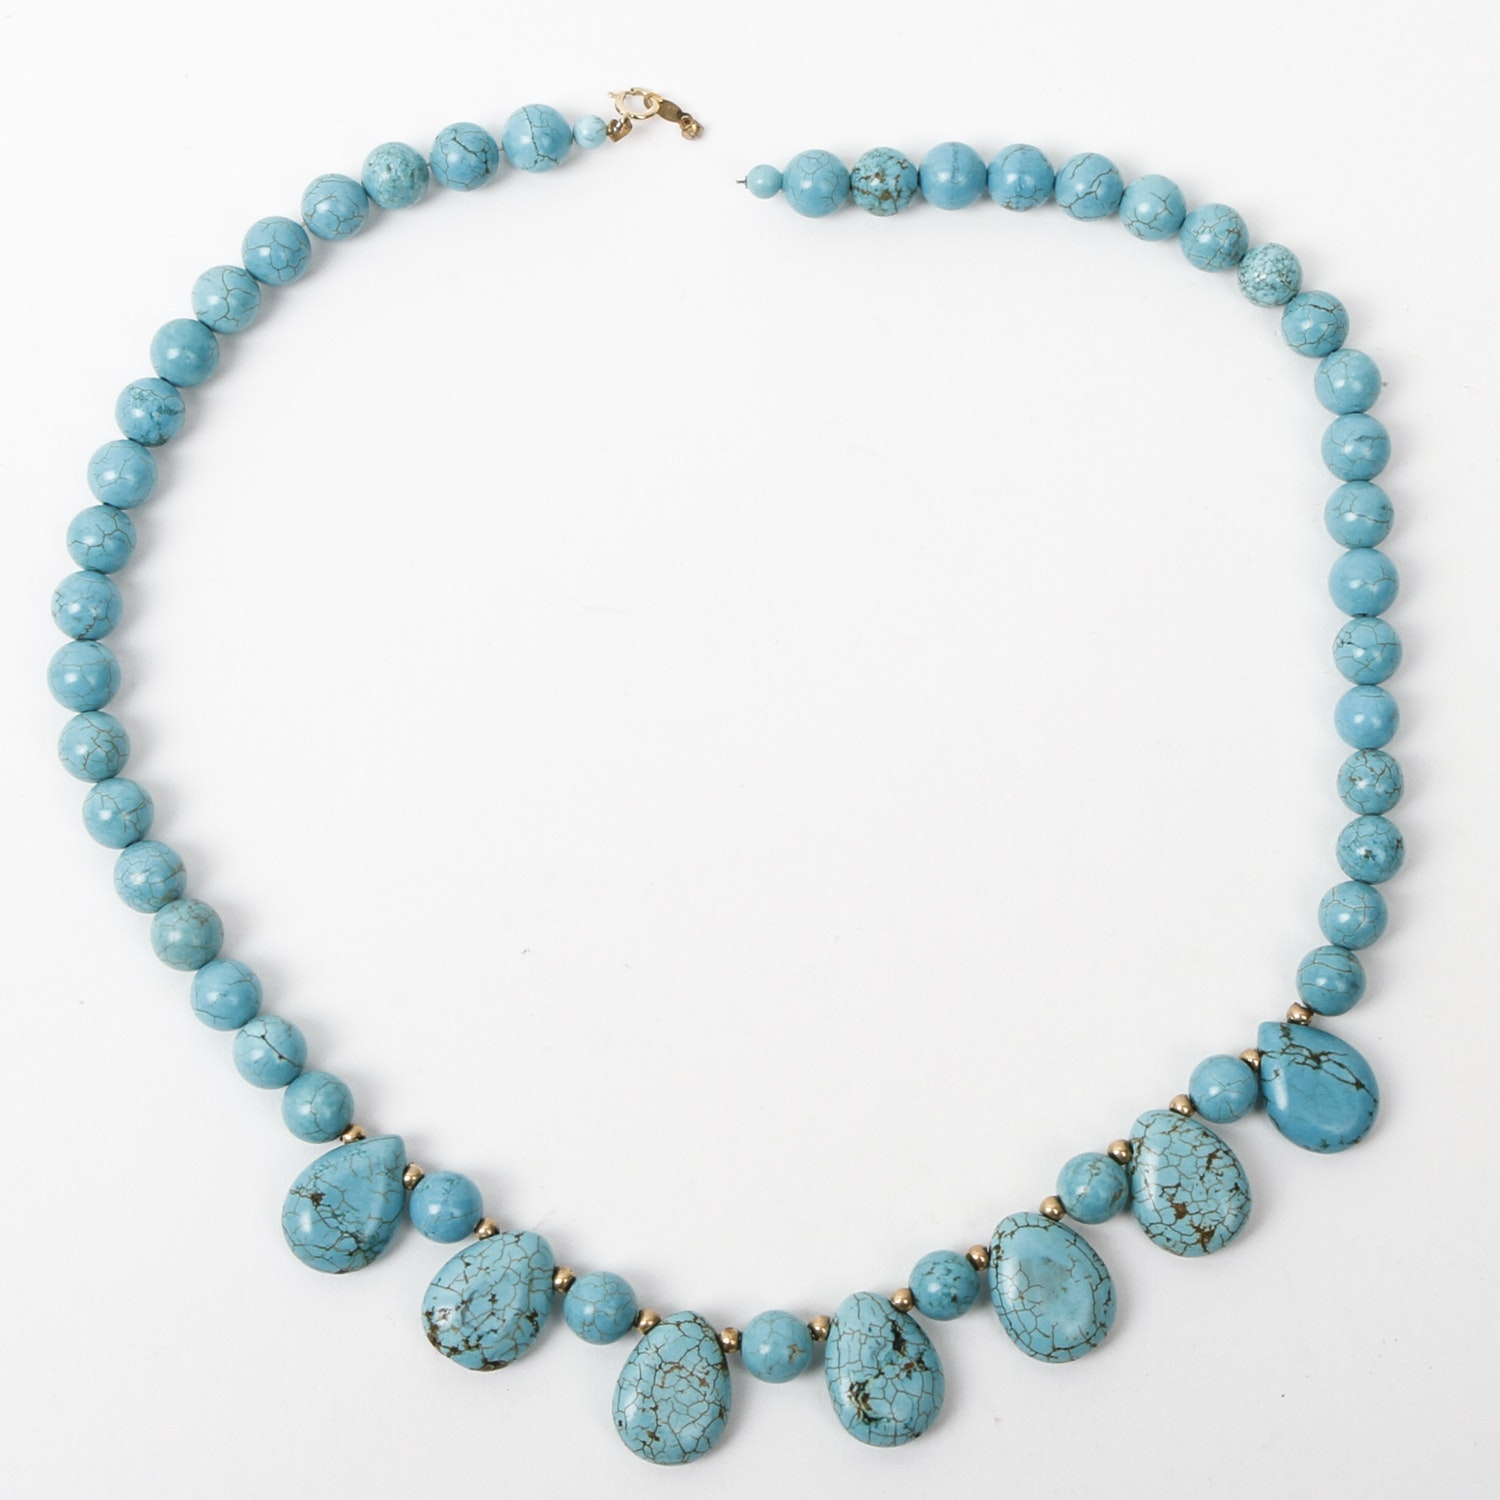 14K Yellow Gold and Dyed Howlite Beaded Necklace